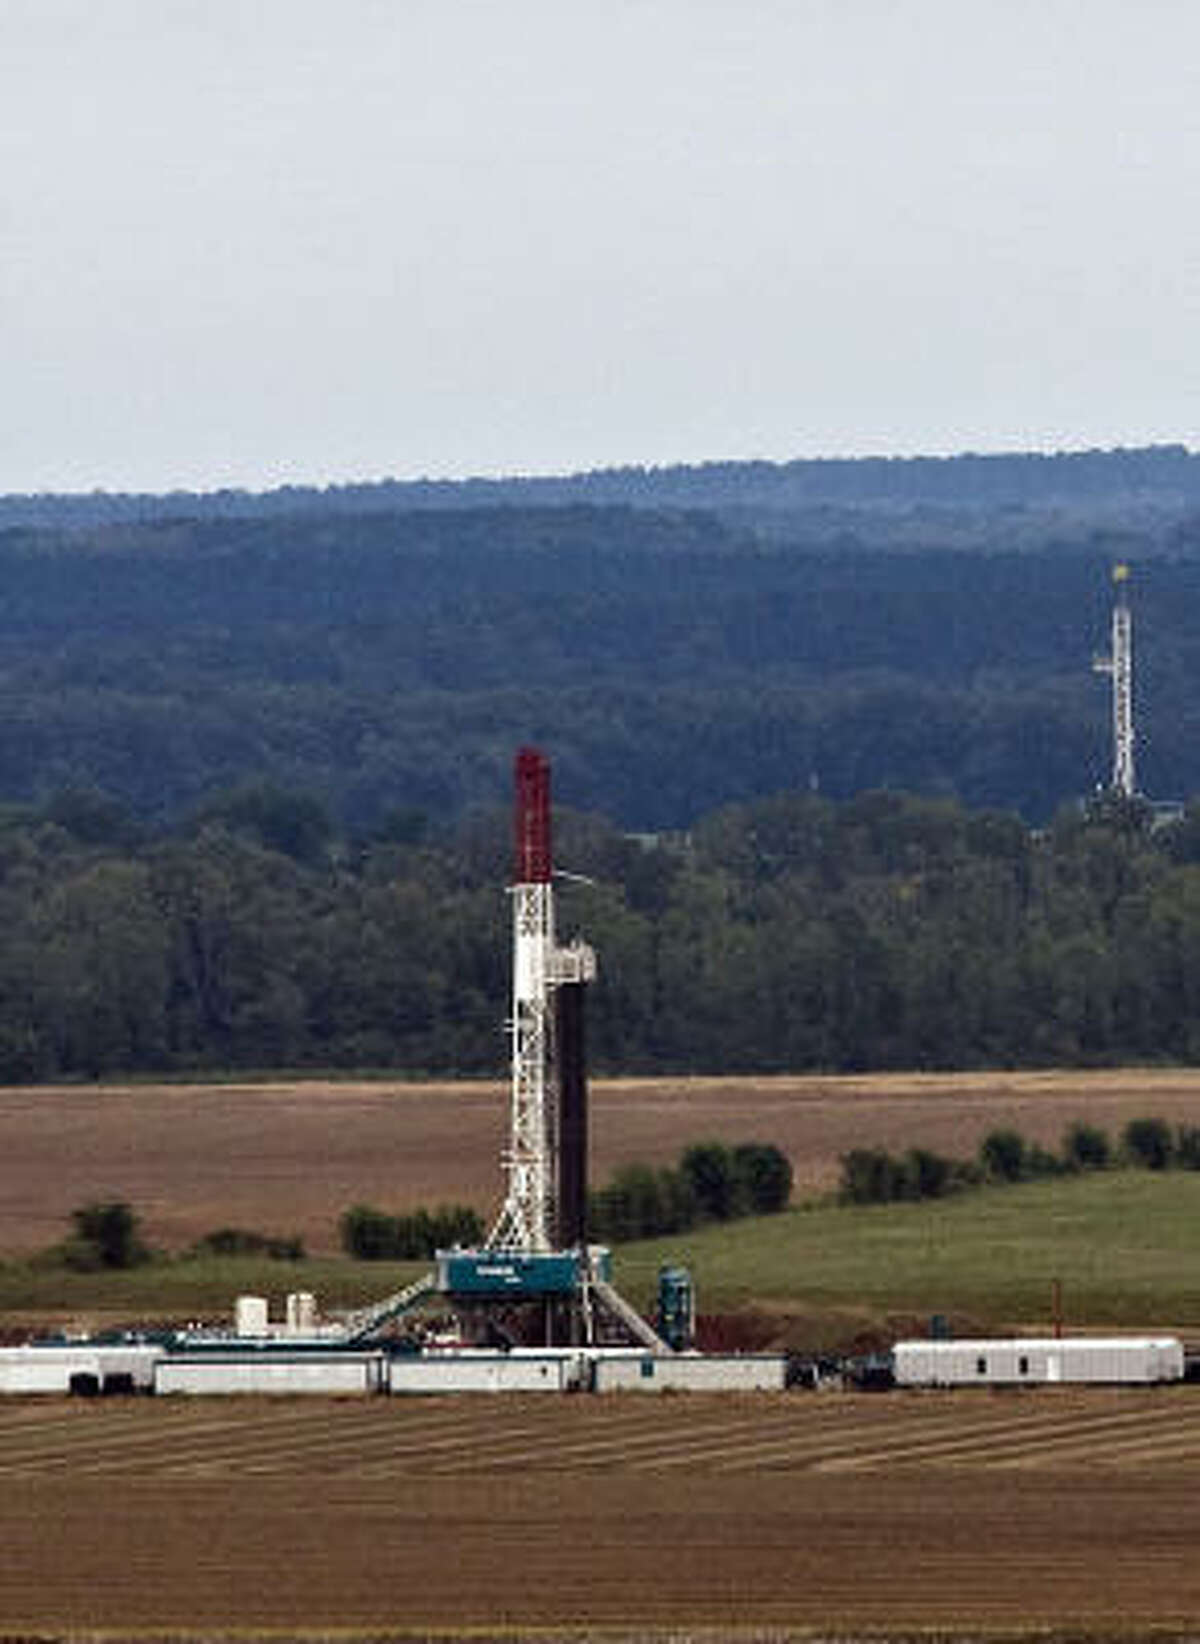 Drilling rigs dot northwest Louisiana, where locked into cement-like shale formations thousands of feet underground are potentially huge quantities of natural gas.